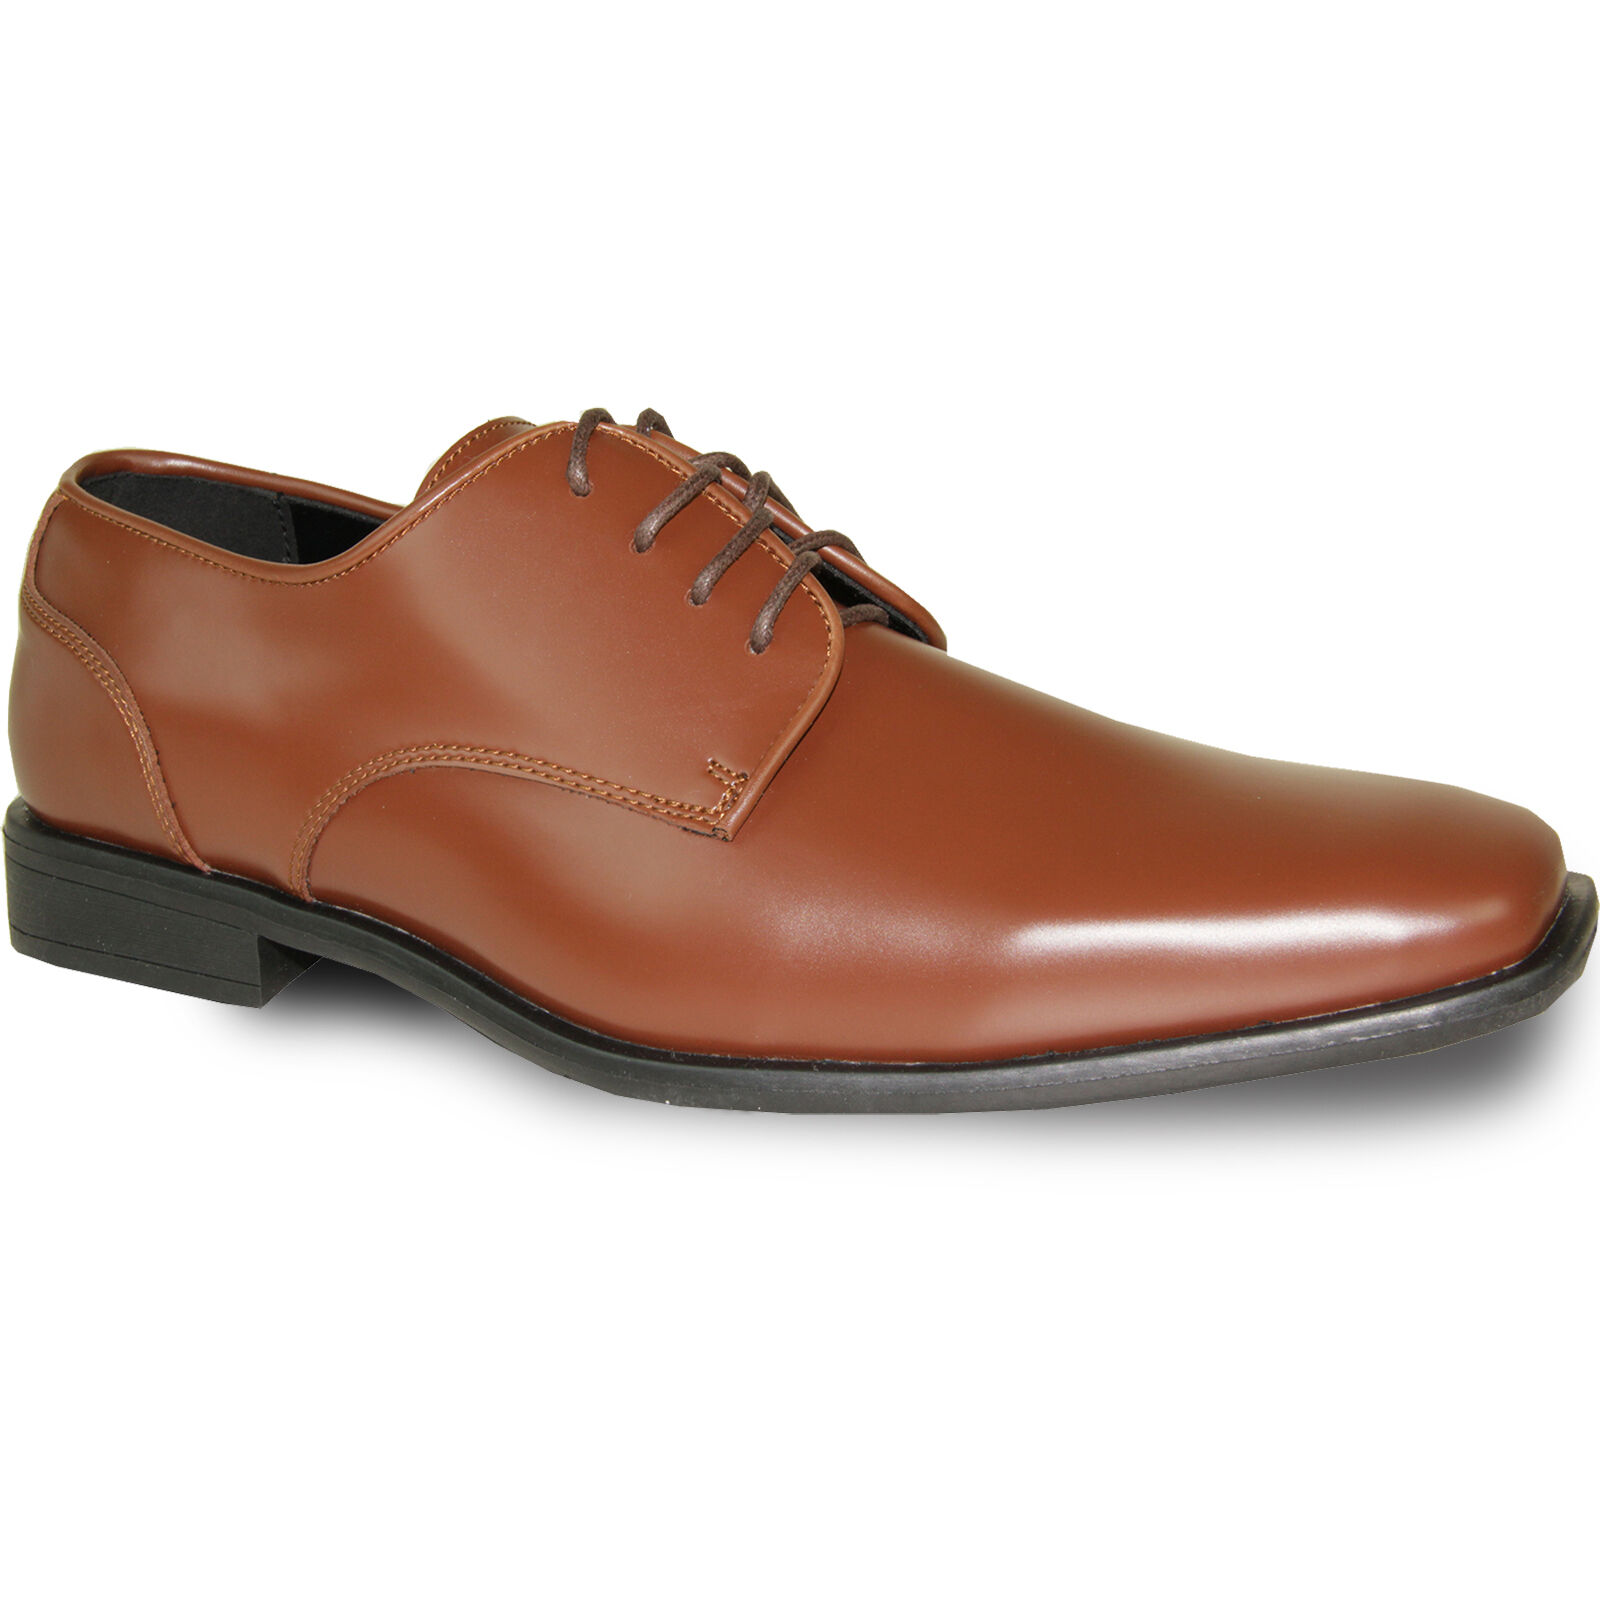 VANGELO New Uomo Dress Shoes TUX-2 Tuxedo For Formal Wedding Cognac Size Up to 18